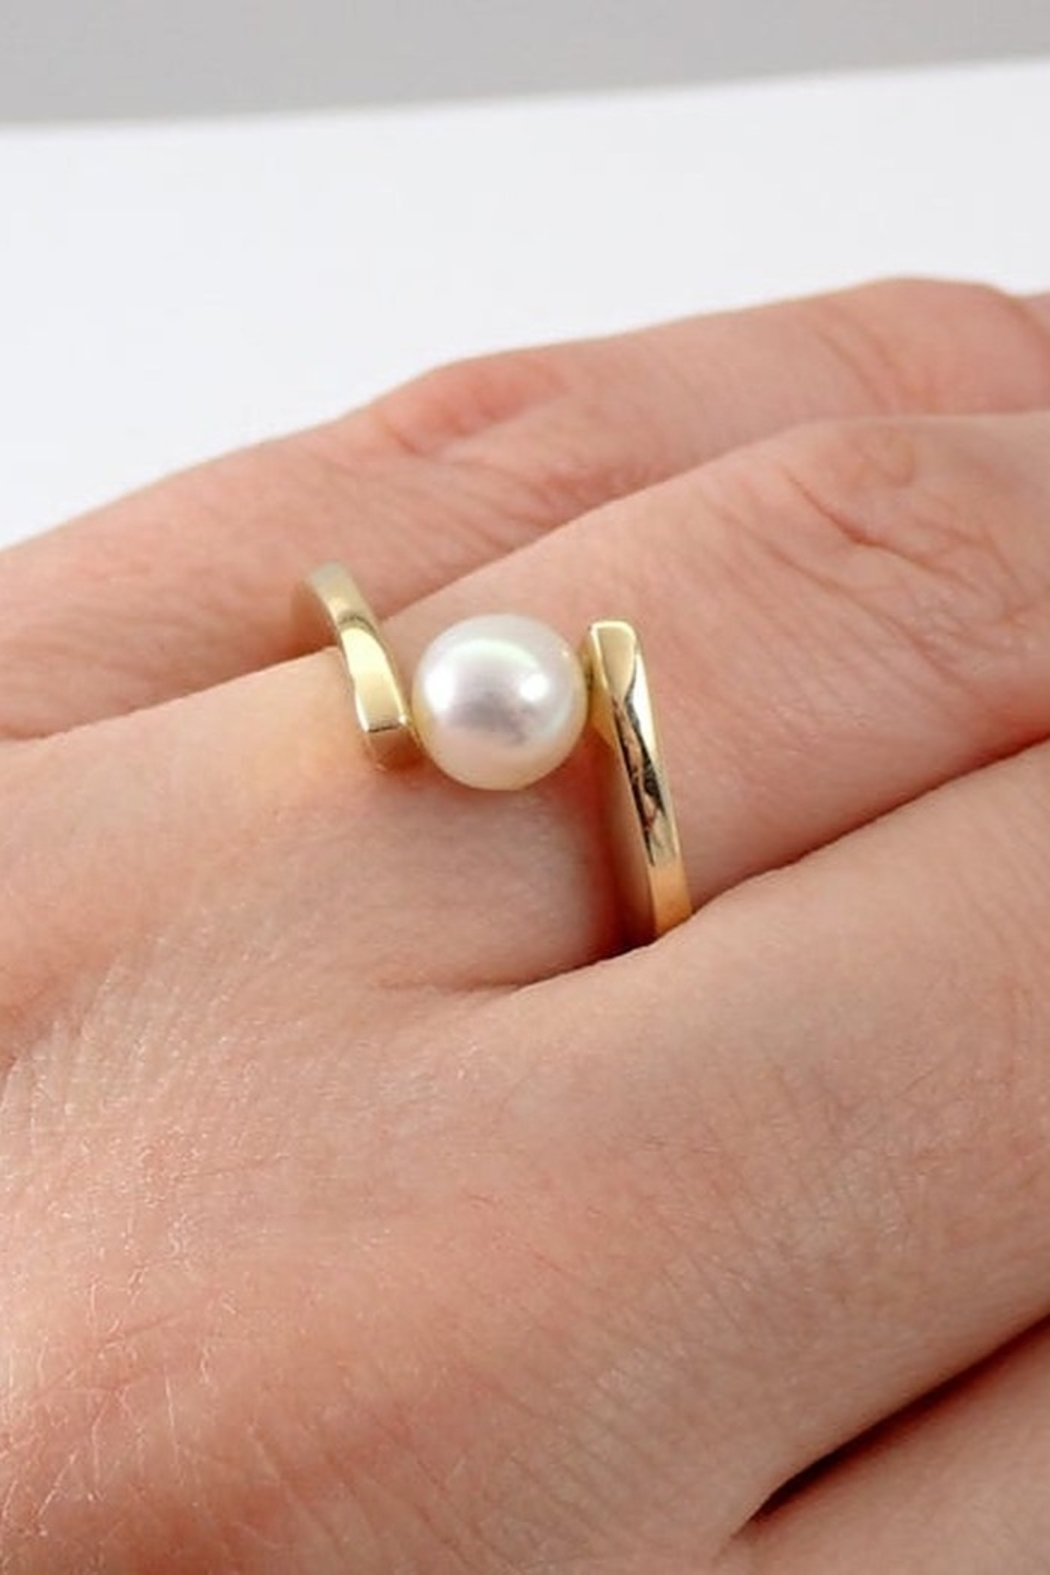 Margolin & Co Yellow Gold Pearl Solitaire Bypasss Engagement Ring Size 7.5 June Birthstone FREE Sizing - Main Image